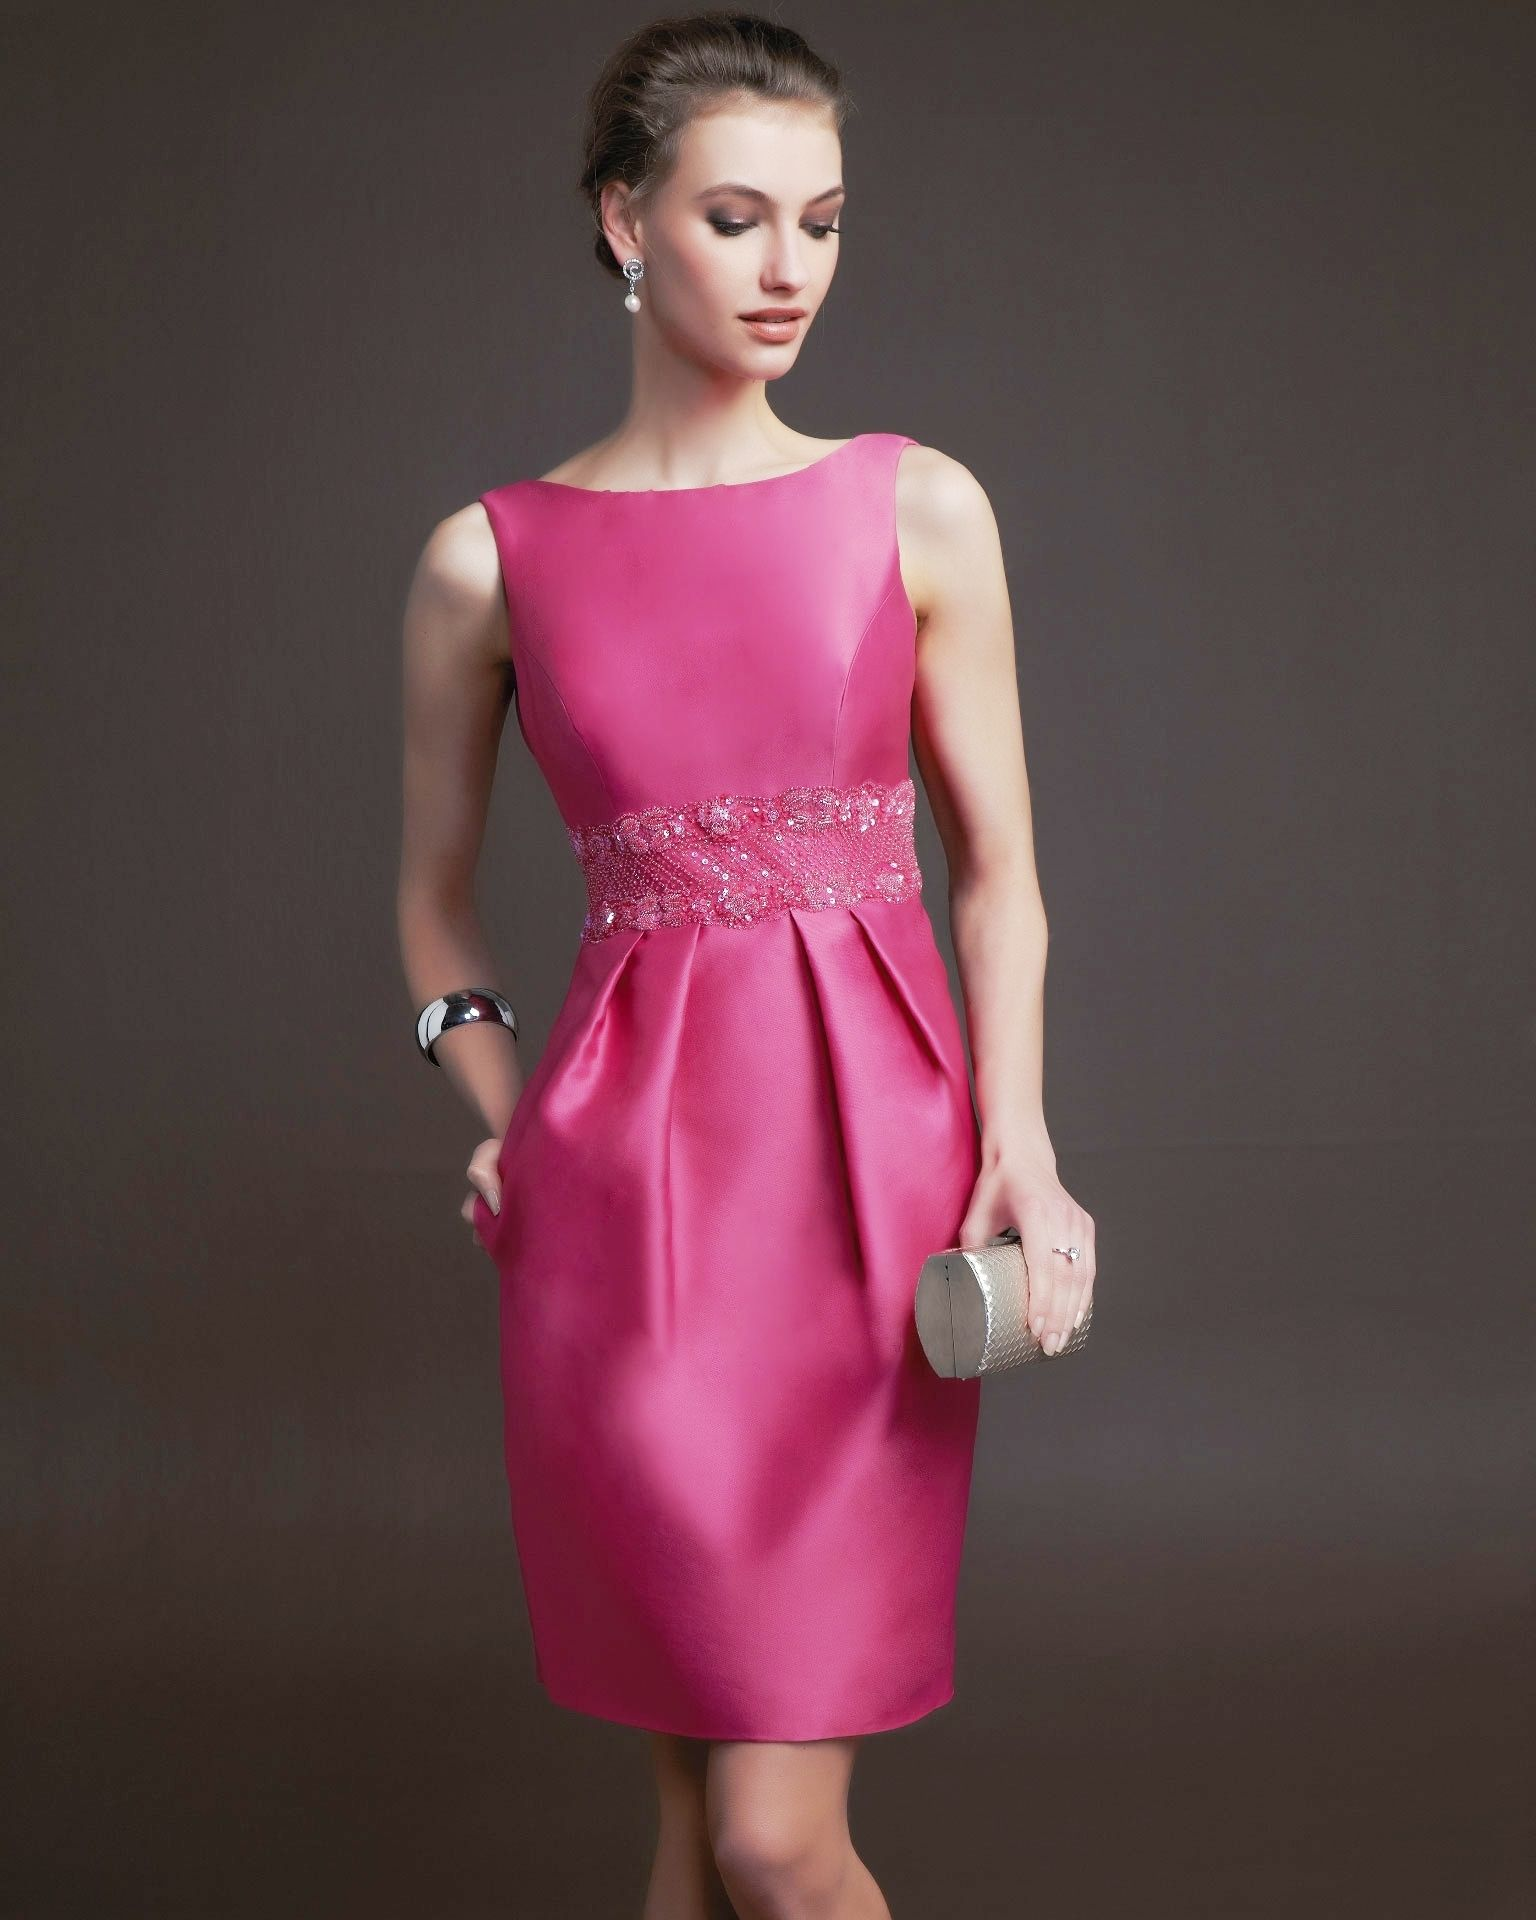 Dresses discount hurry up to buy top pinterest